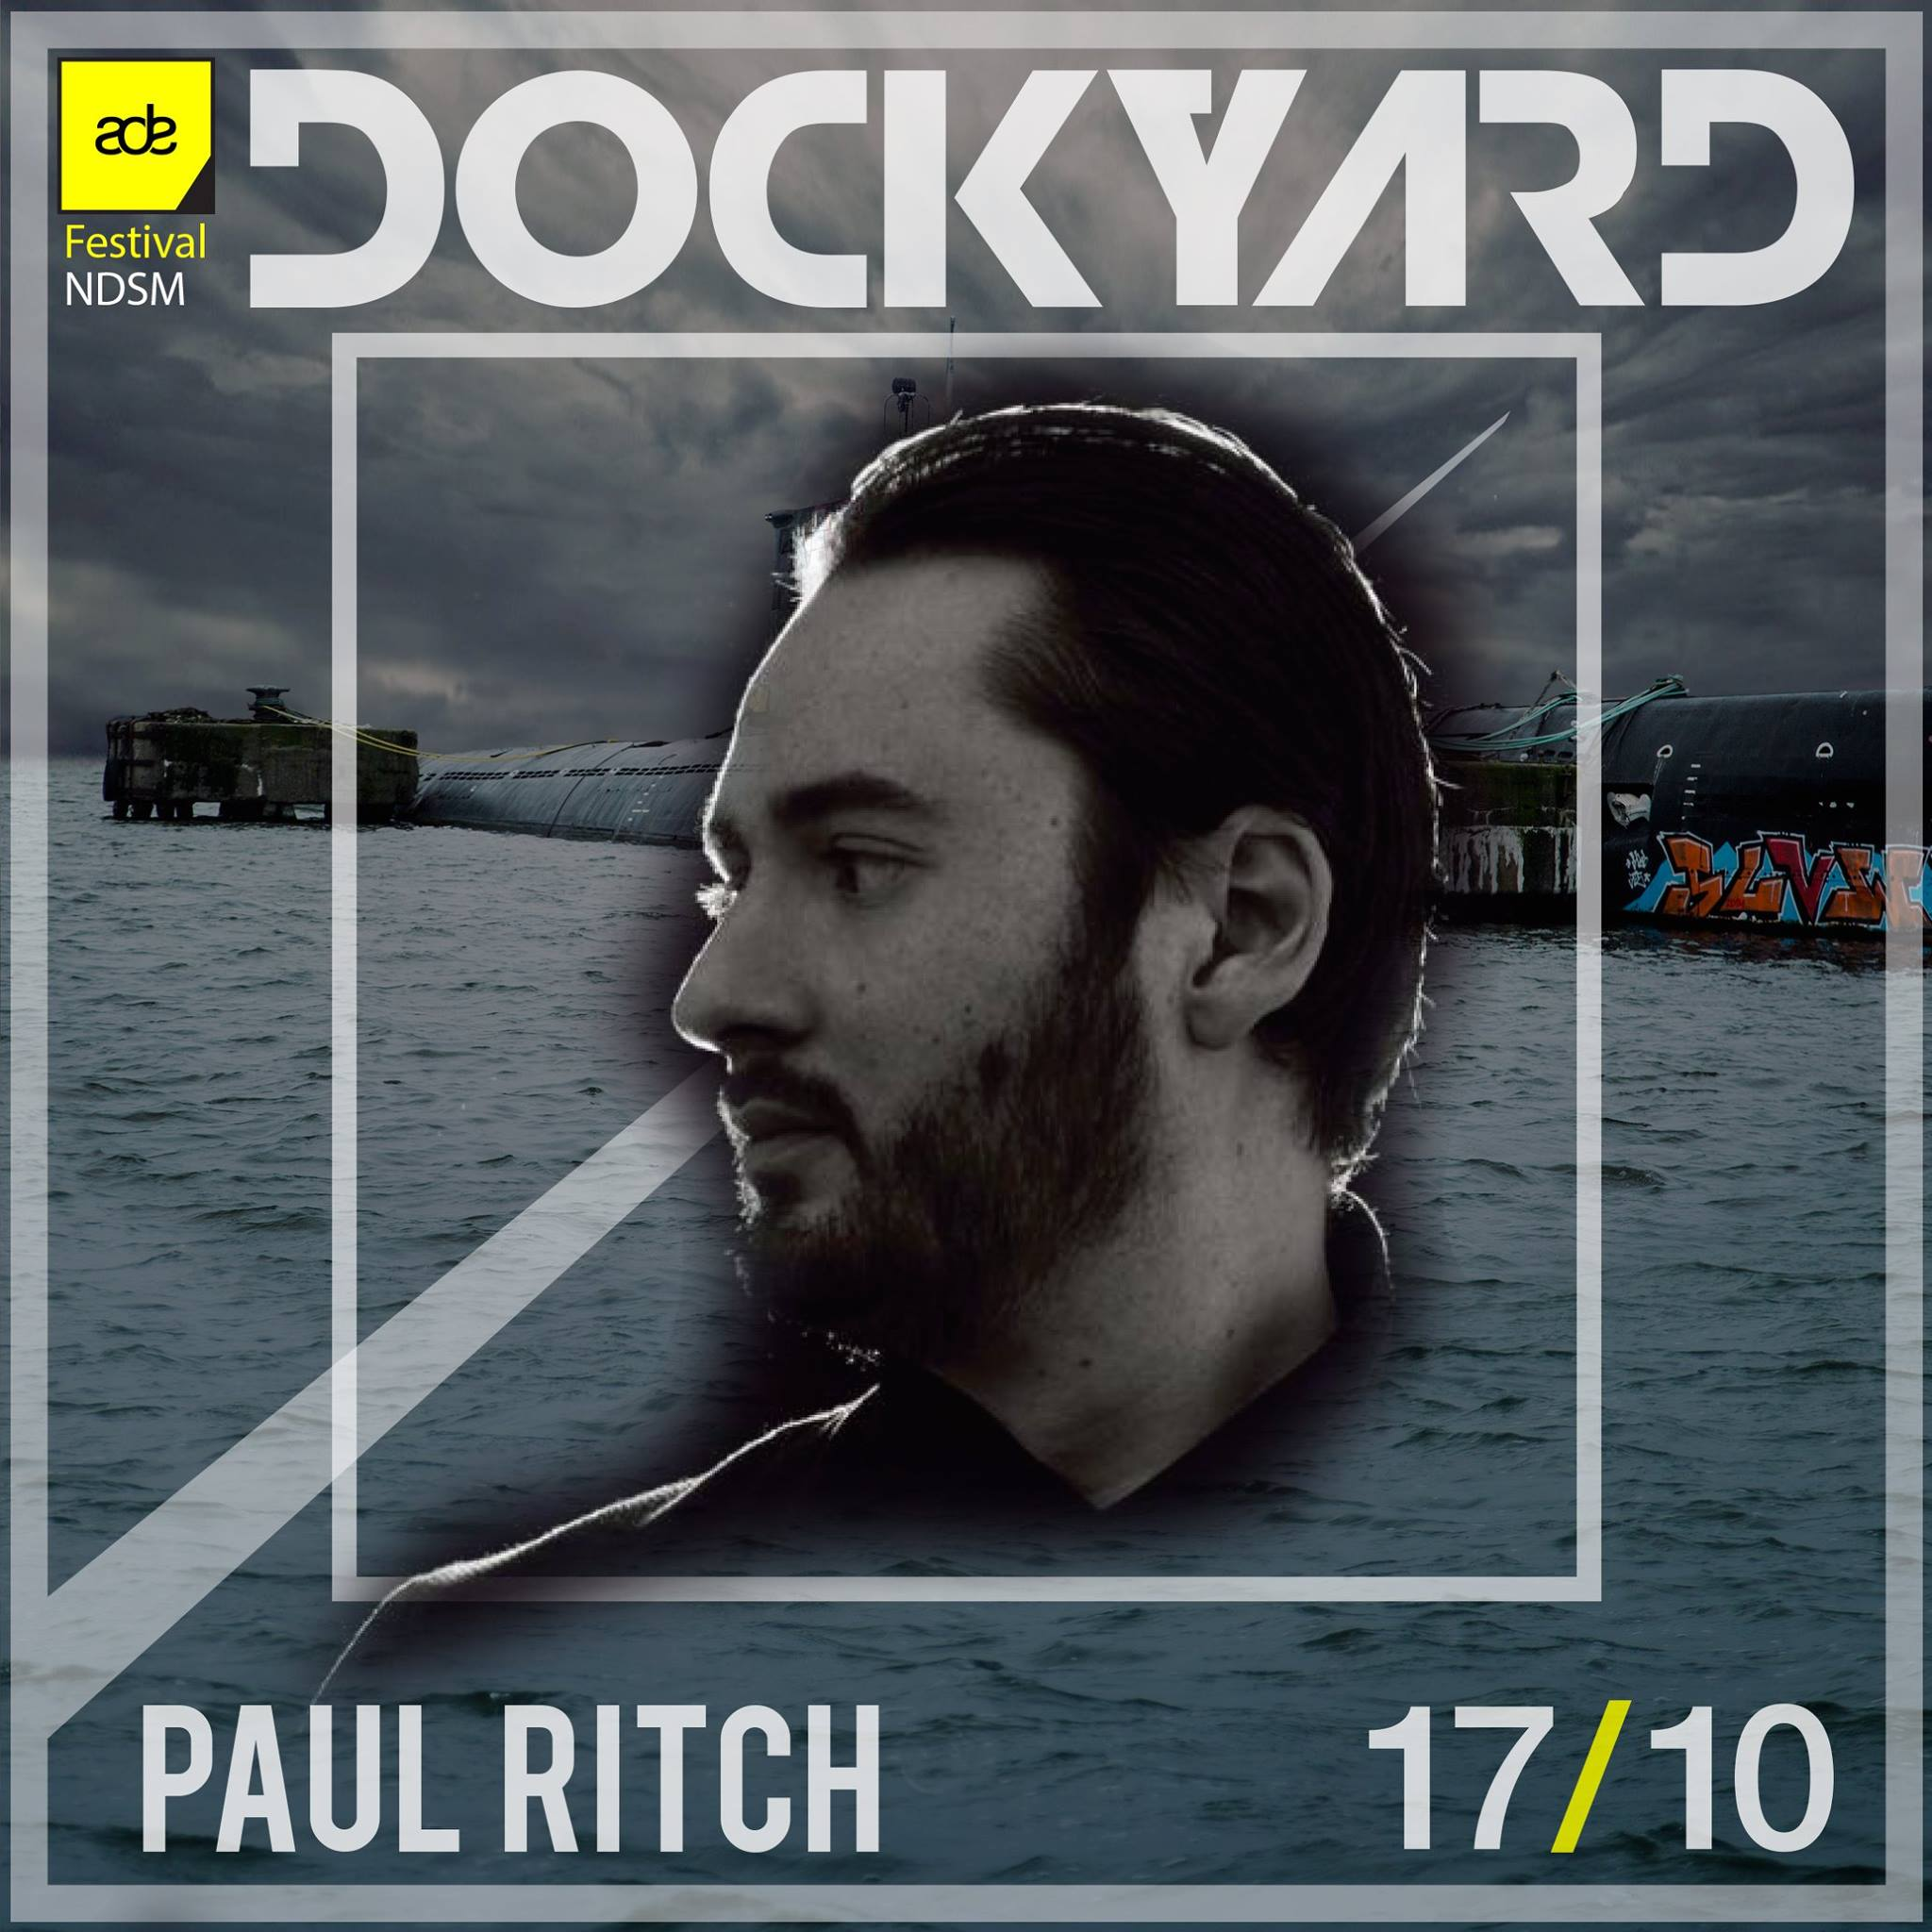 download → Paul Ritch - live at Dockyard Festival, FACT Stage, NDSM Docklands, ADE 2015 - 17-Oct-2015